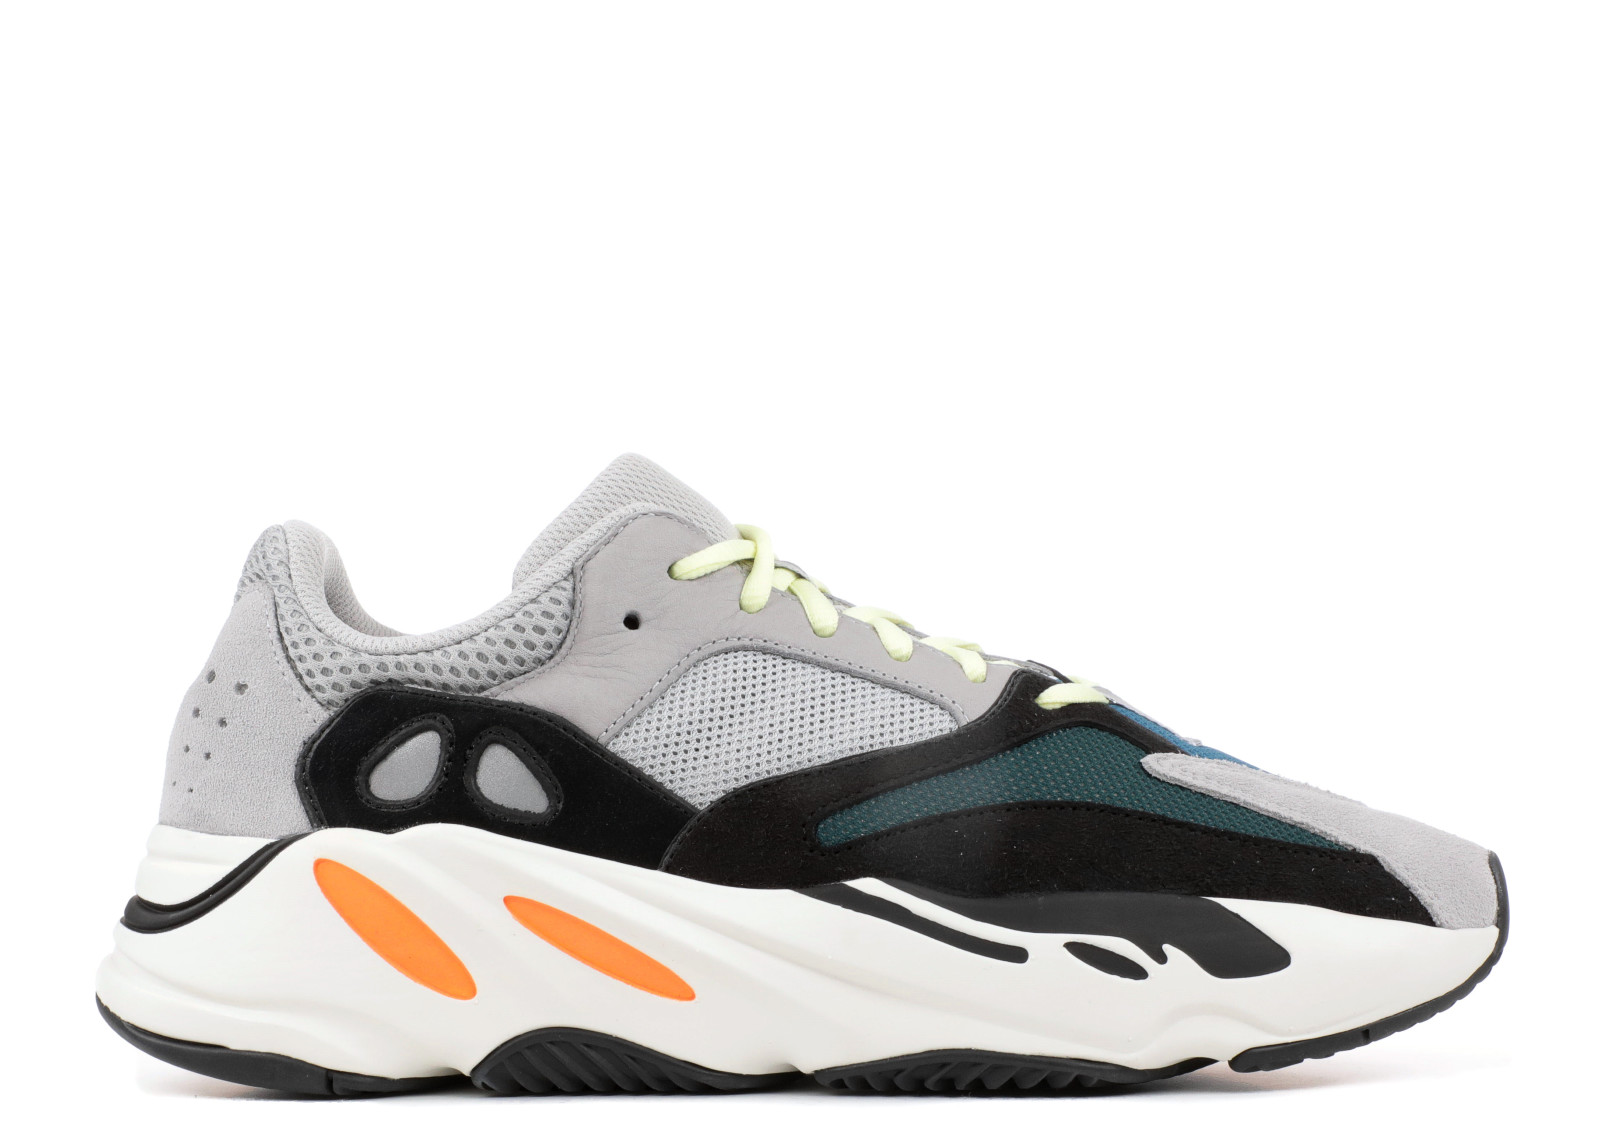 b81f78a74 The Yeezy Boost 700  Wave Runner  Is Restocking - Trapped Magazine